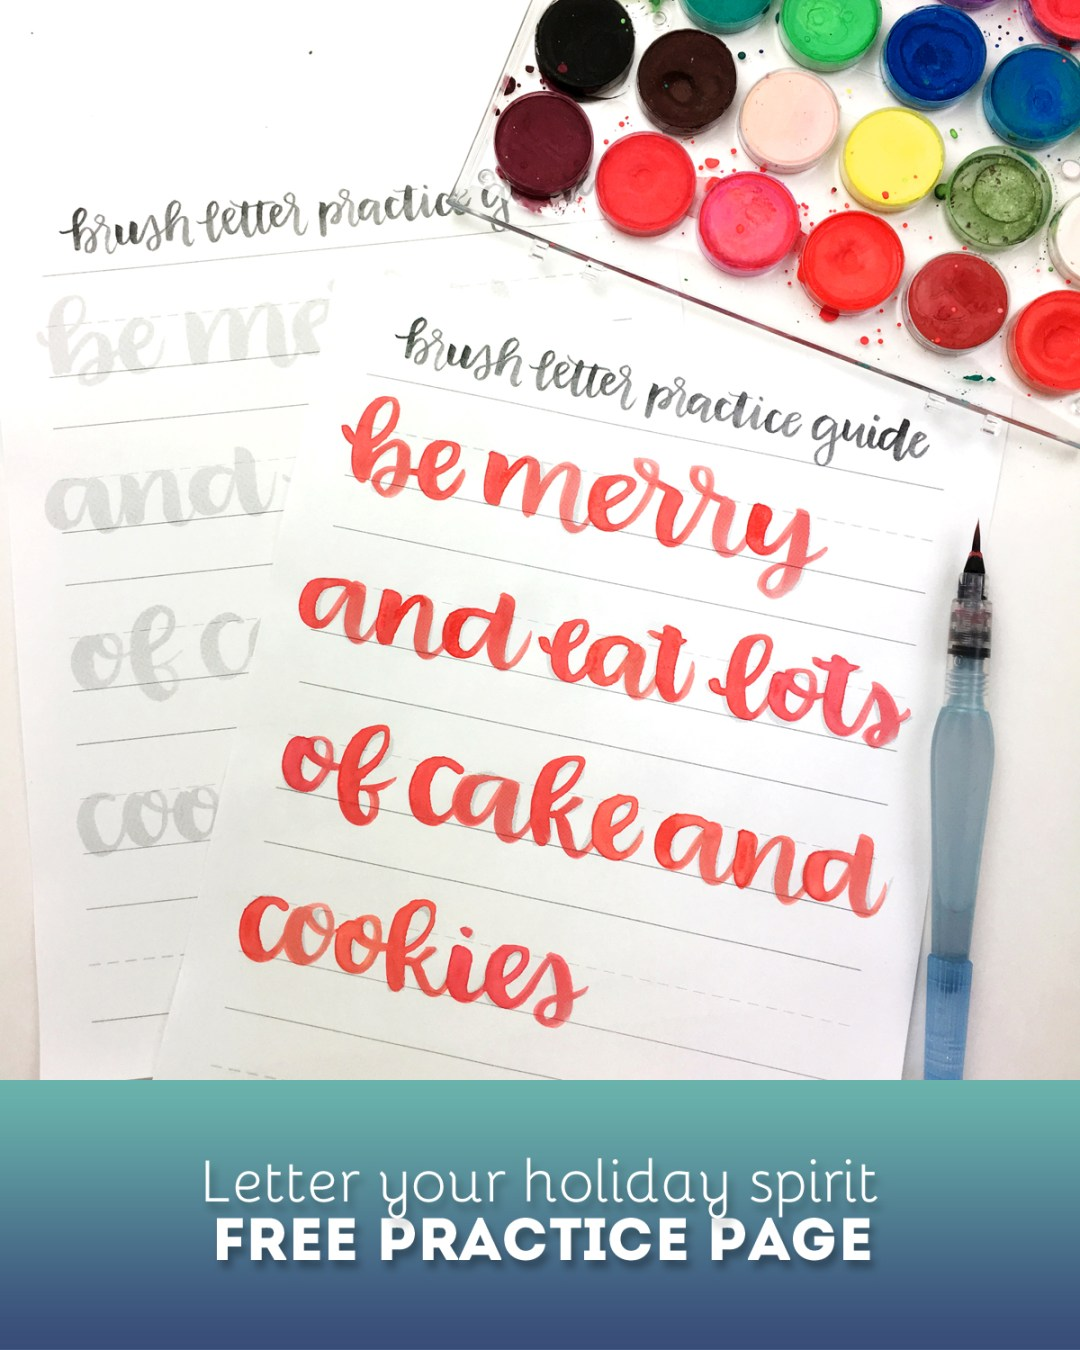 Free Holiday Brush Lettering Practice Page - www.randomolive.com